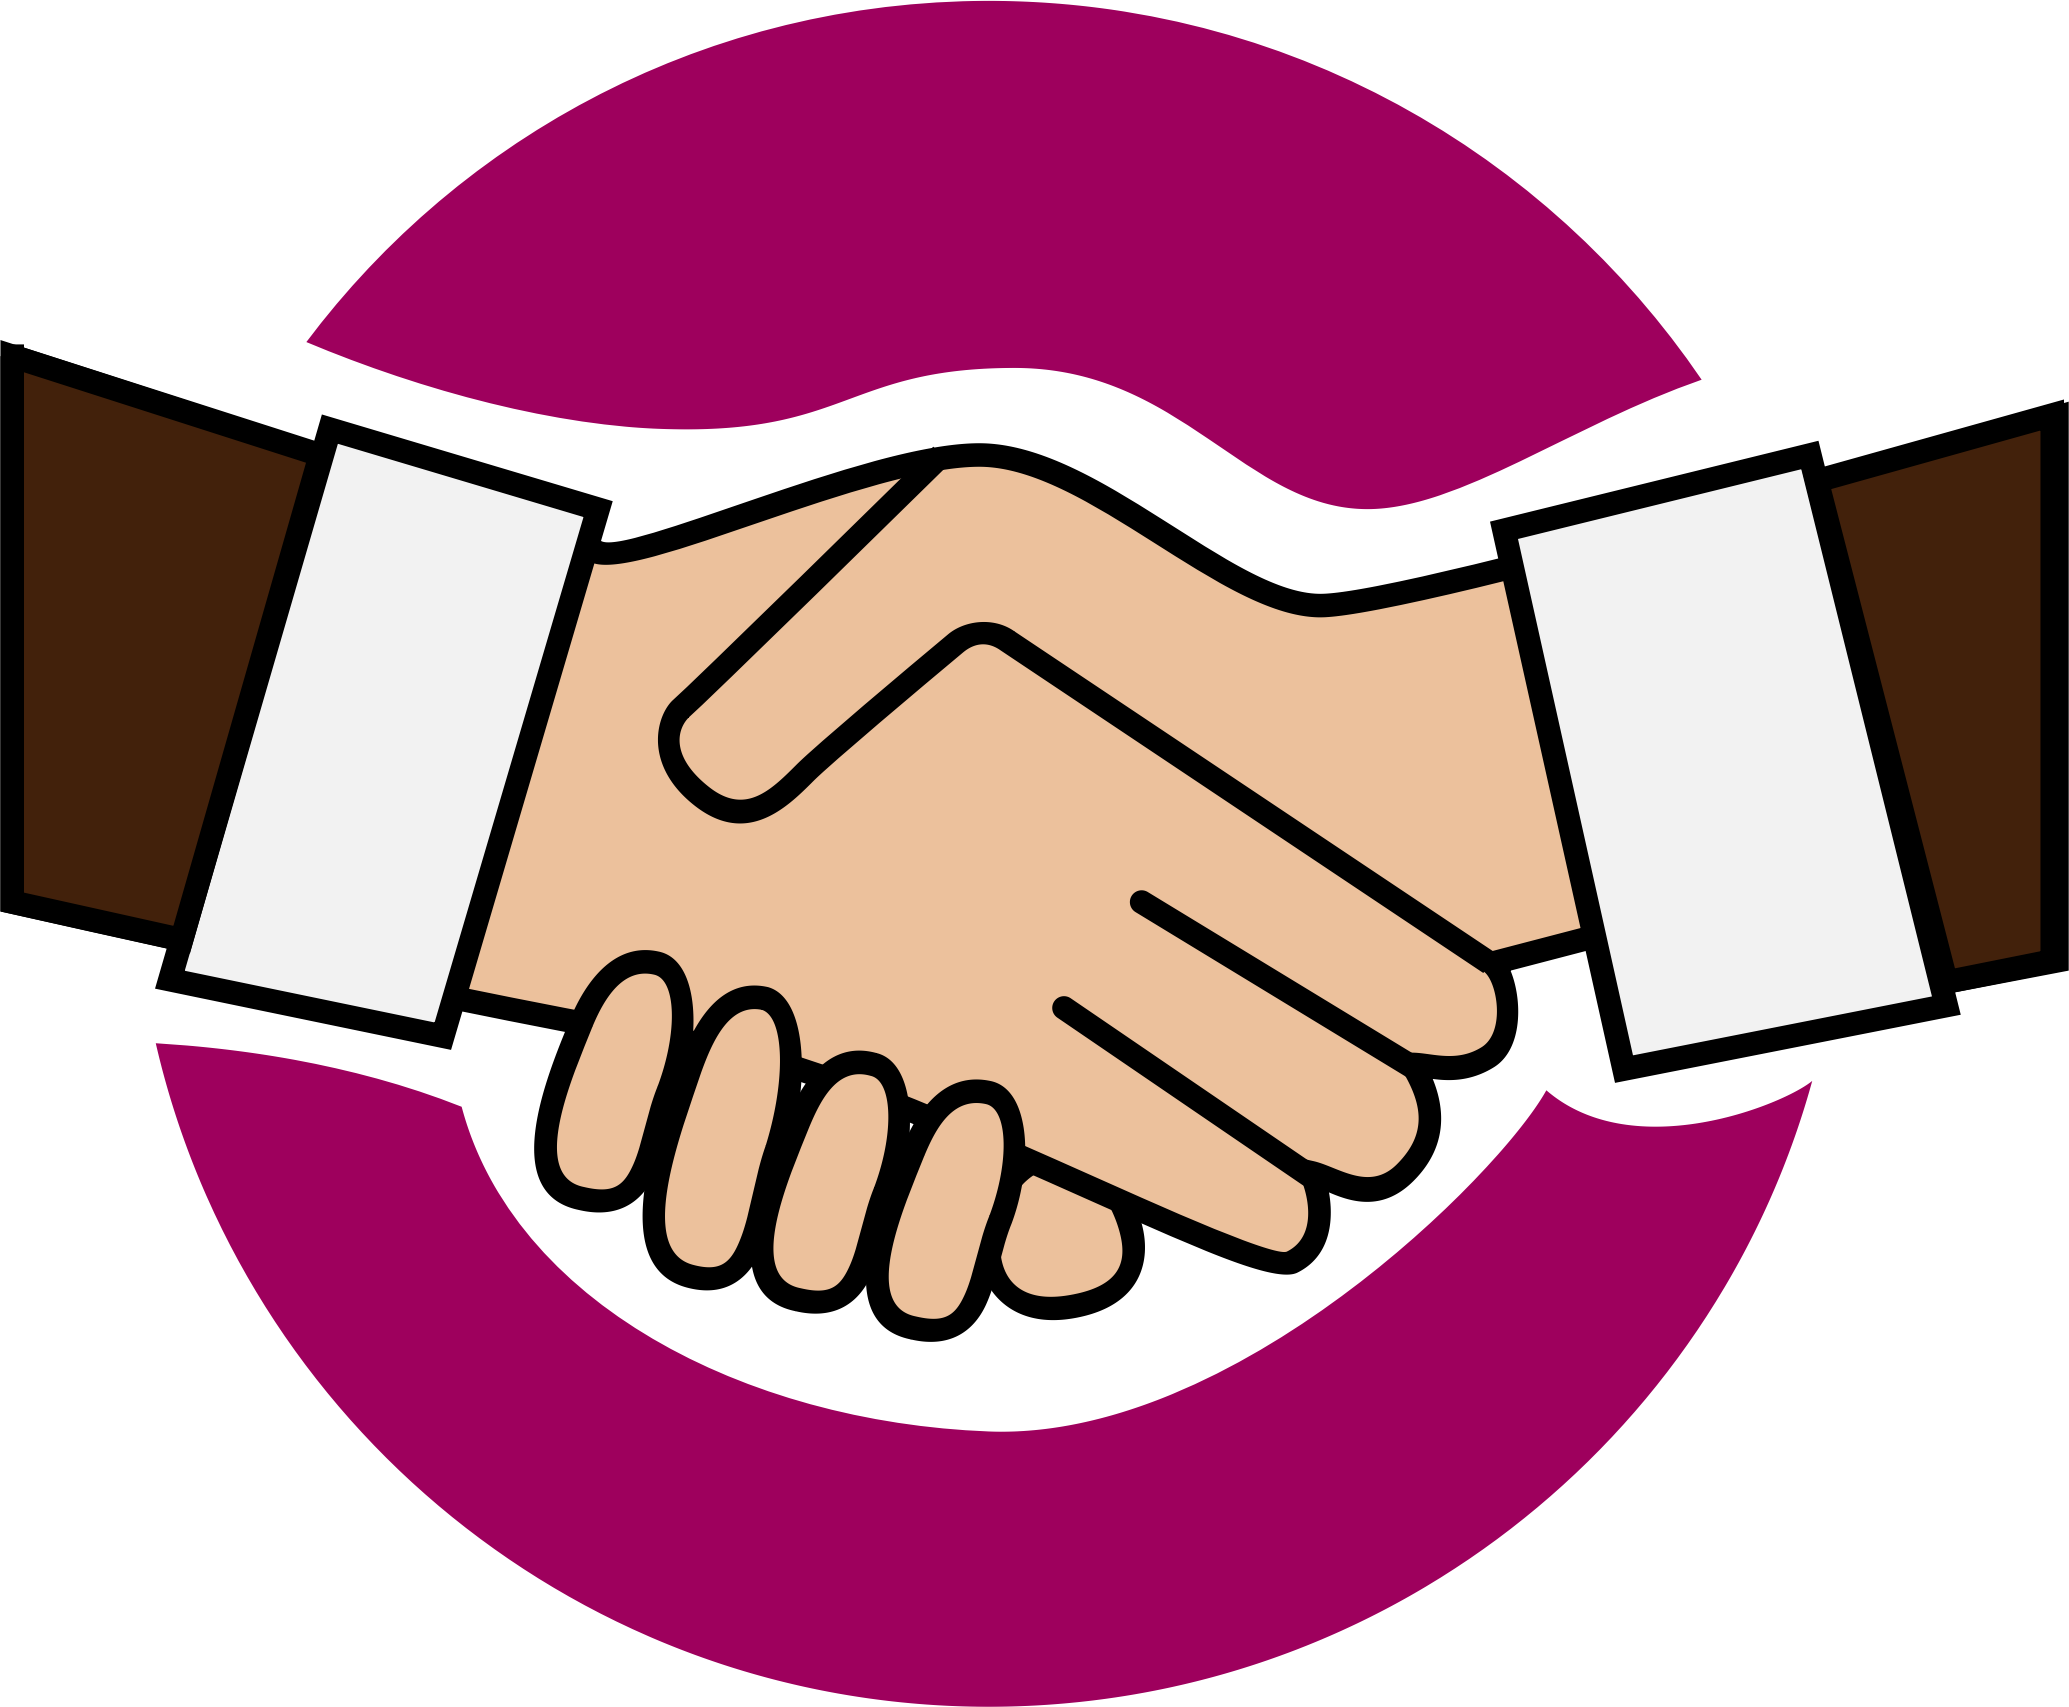 Hand shake clip art clipart images gallery for free download.